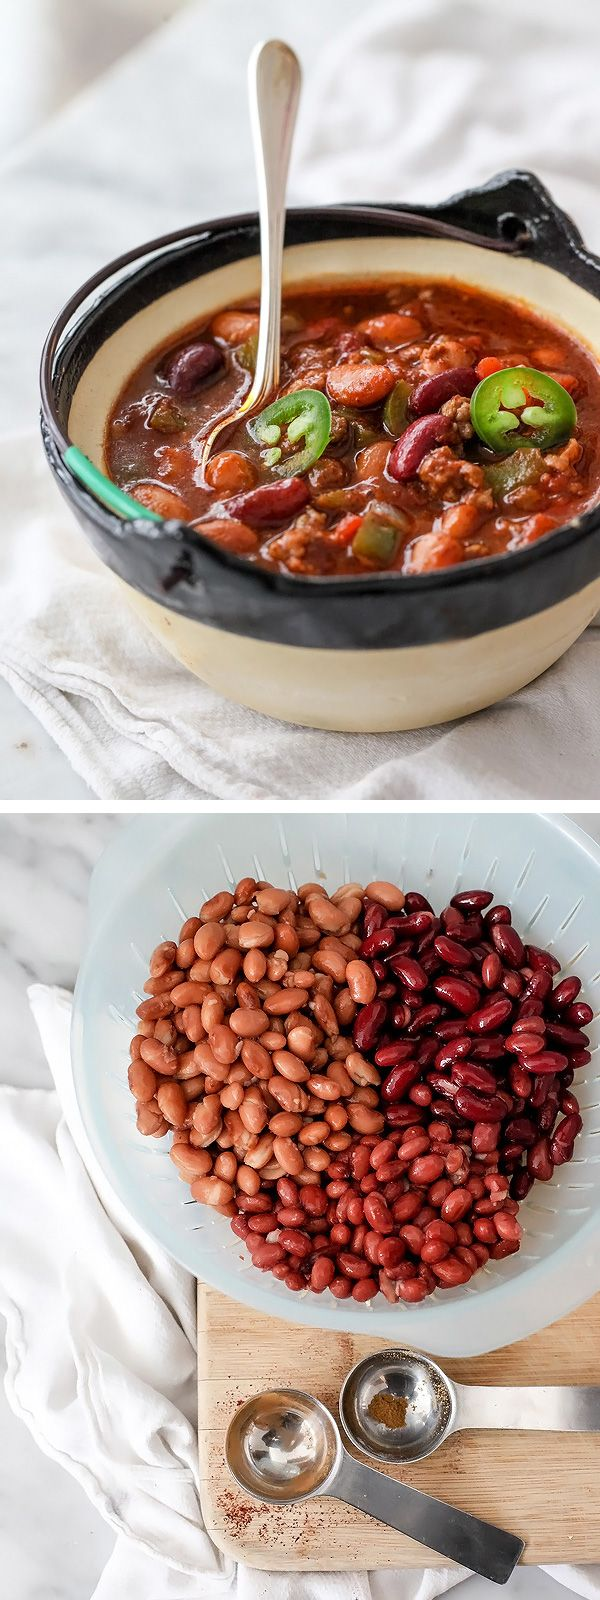 17 Best ideas about Ingredients For Chili on Pinterest ...